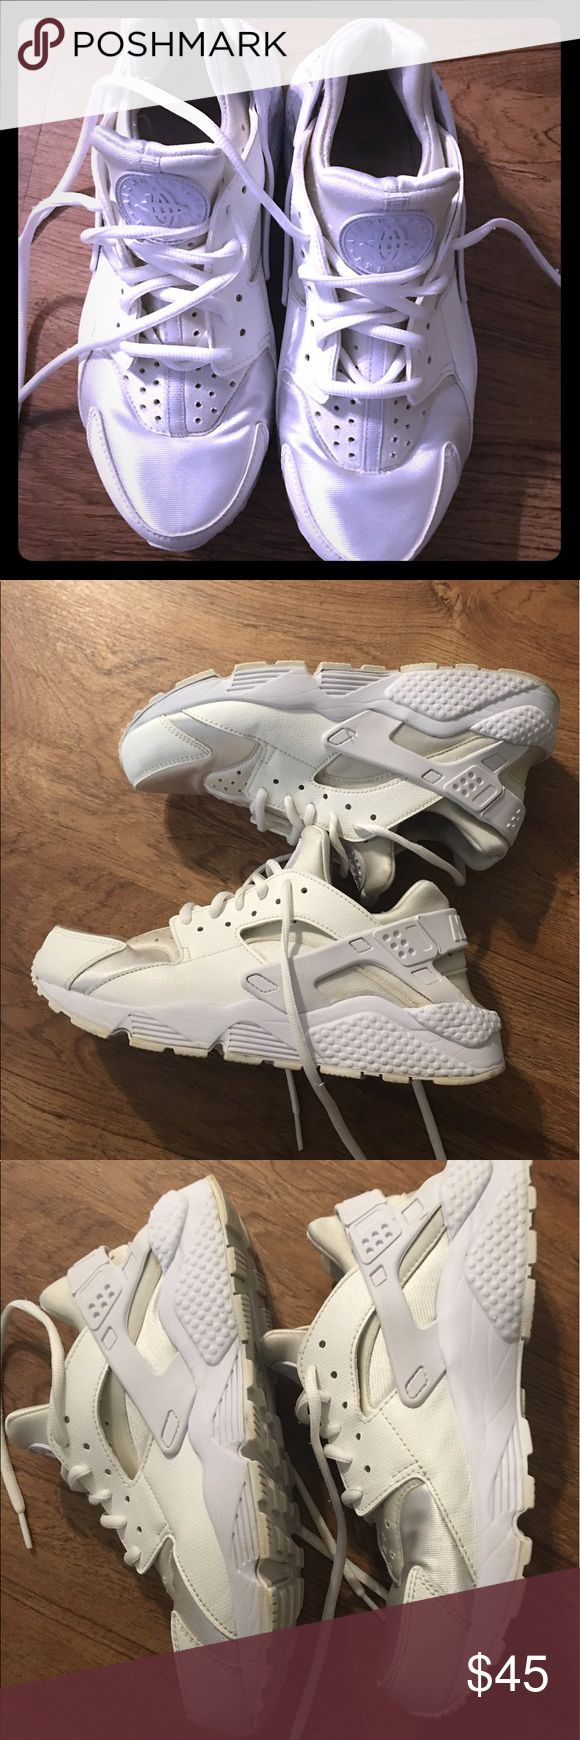 Huaraches Nike White Nike shoes gentle worn not a gym shoes fan Nike Shoes Athletic Shoes